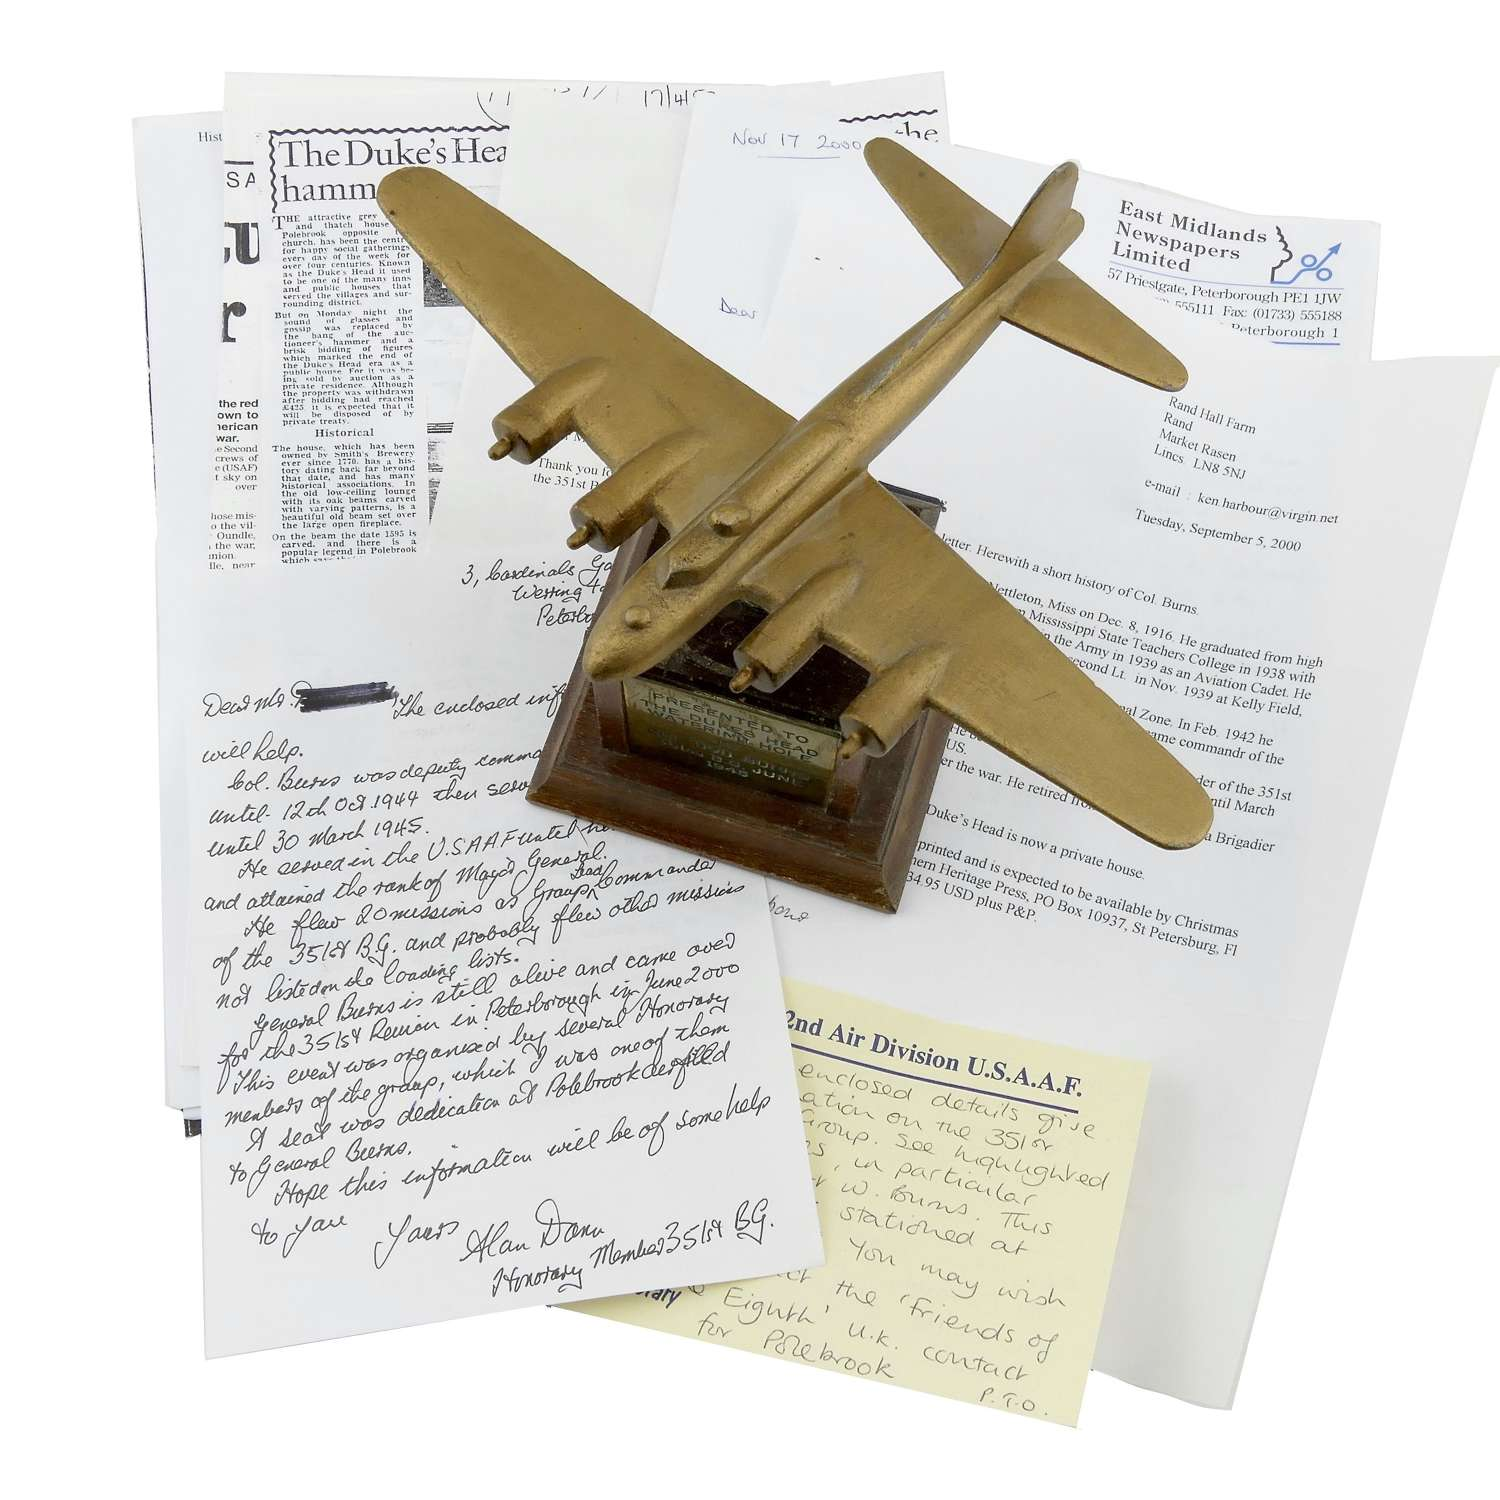 USAAF B-17 model  - with supposed Polebrook, 351st Bomb Group history